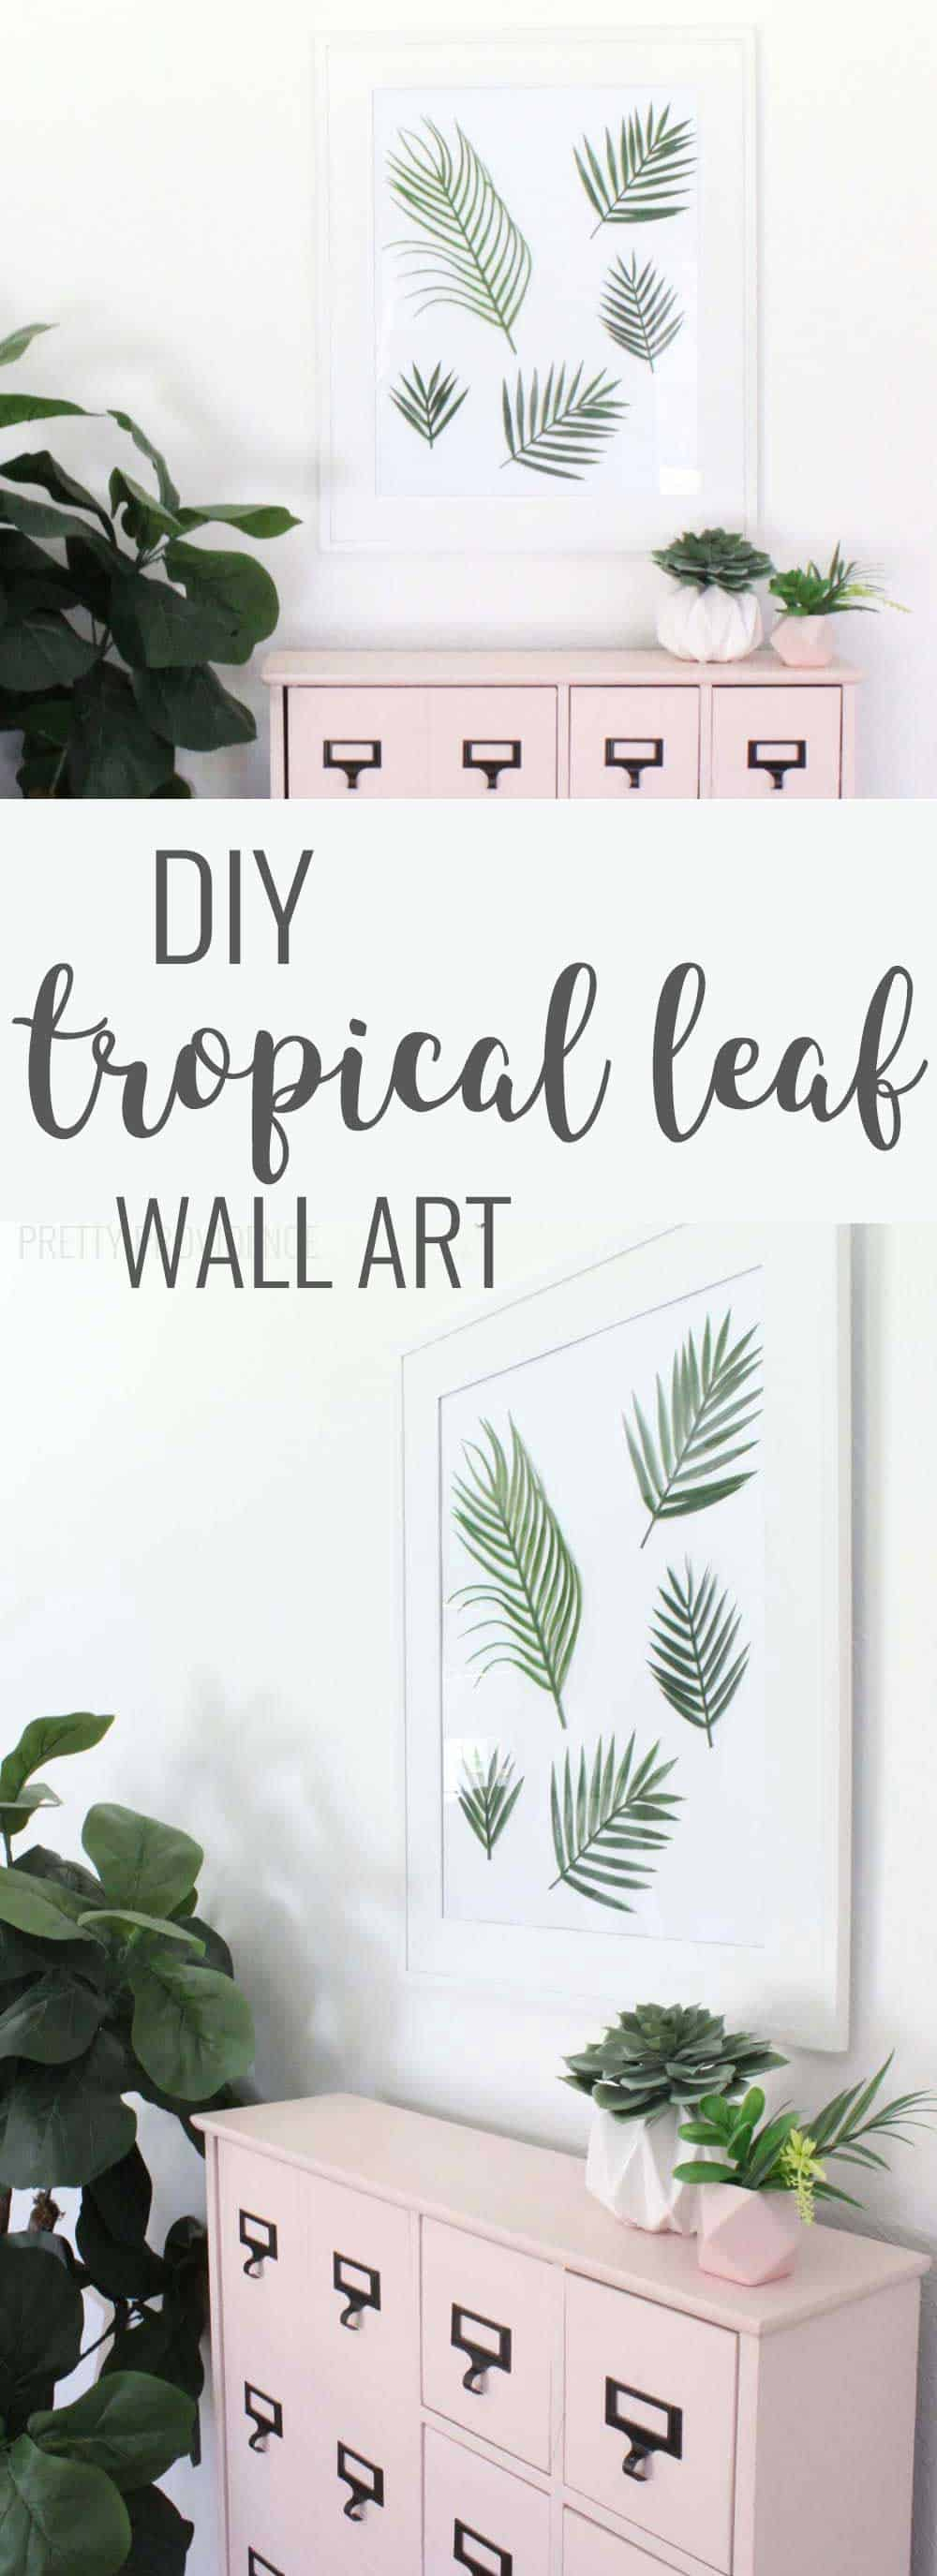 tropical-leaf-wall-art-pin